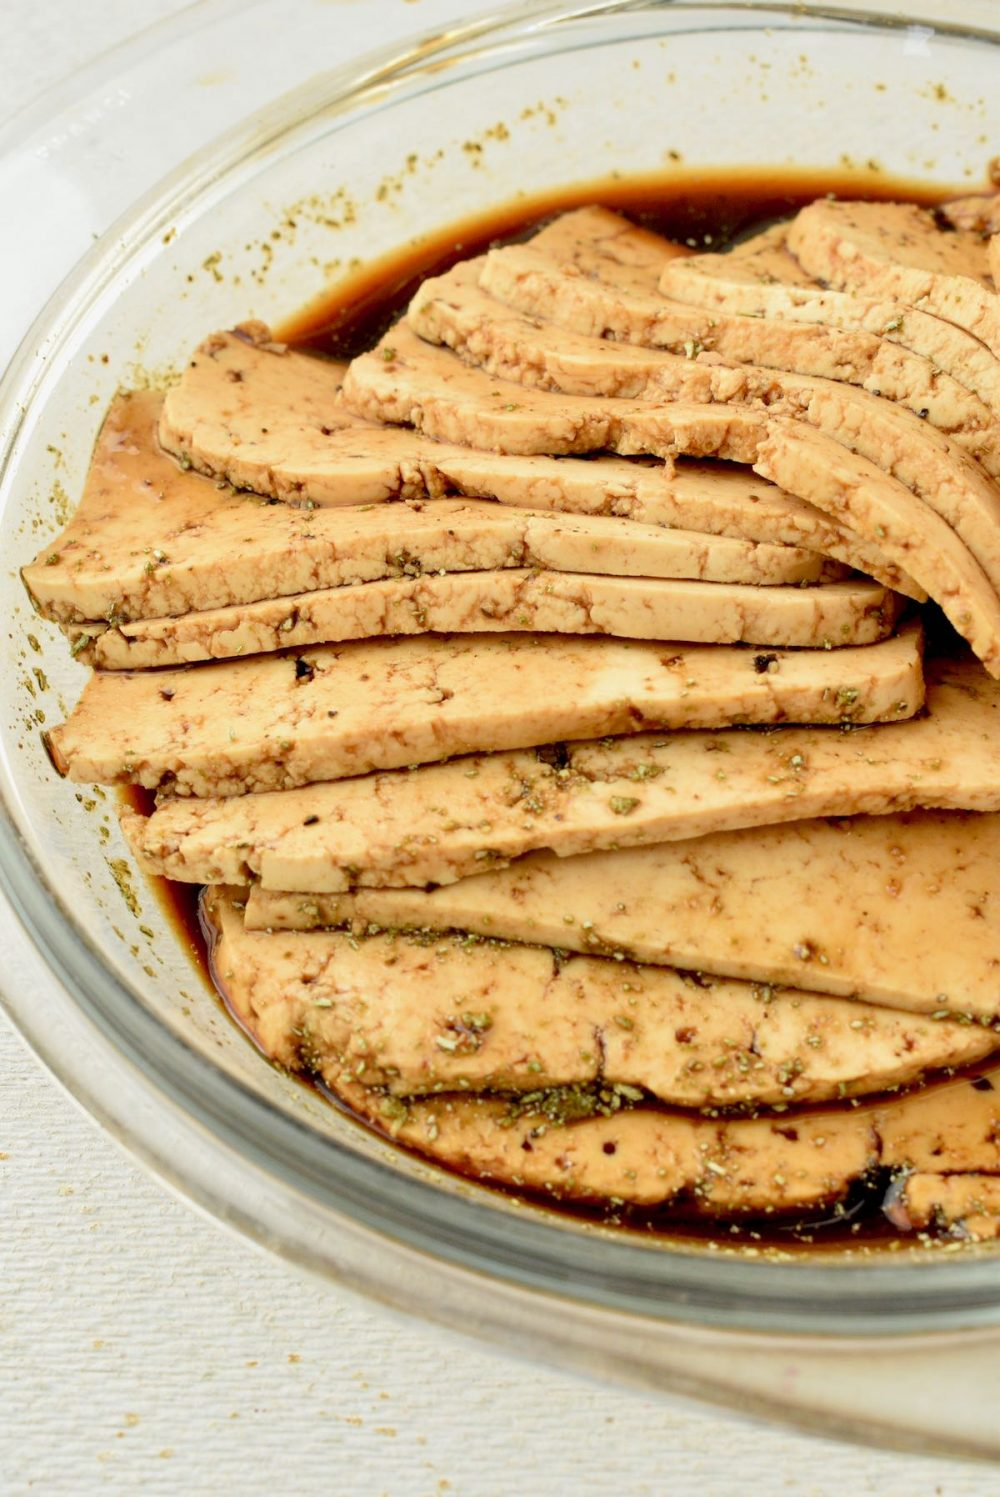 In a shallow glass dish, the tofu slices are marinated in the dark brown marinade.